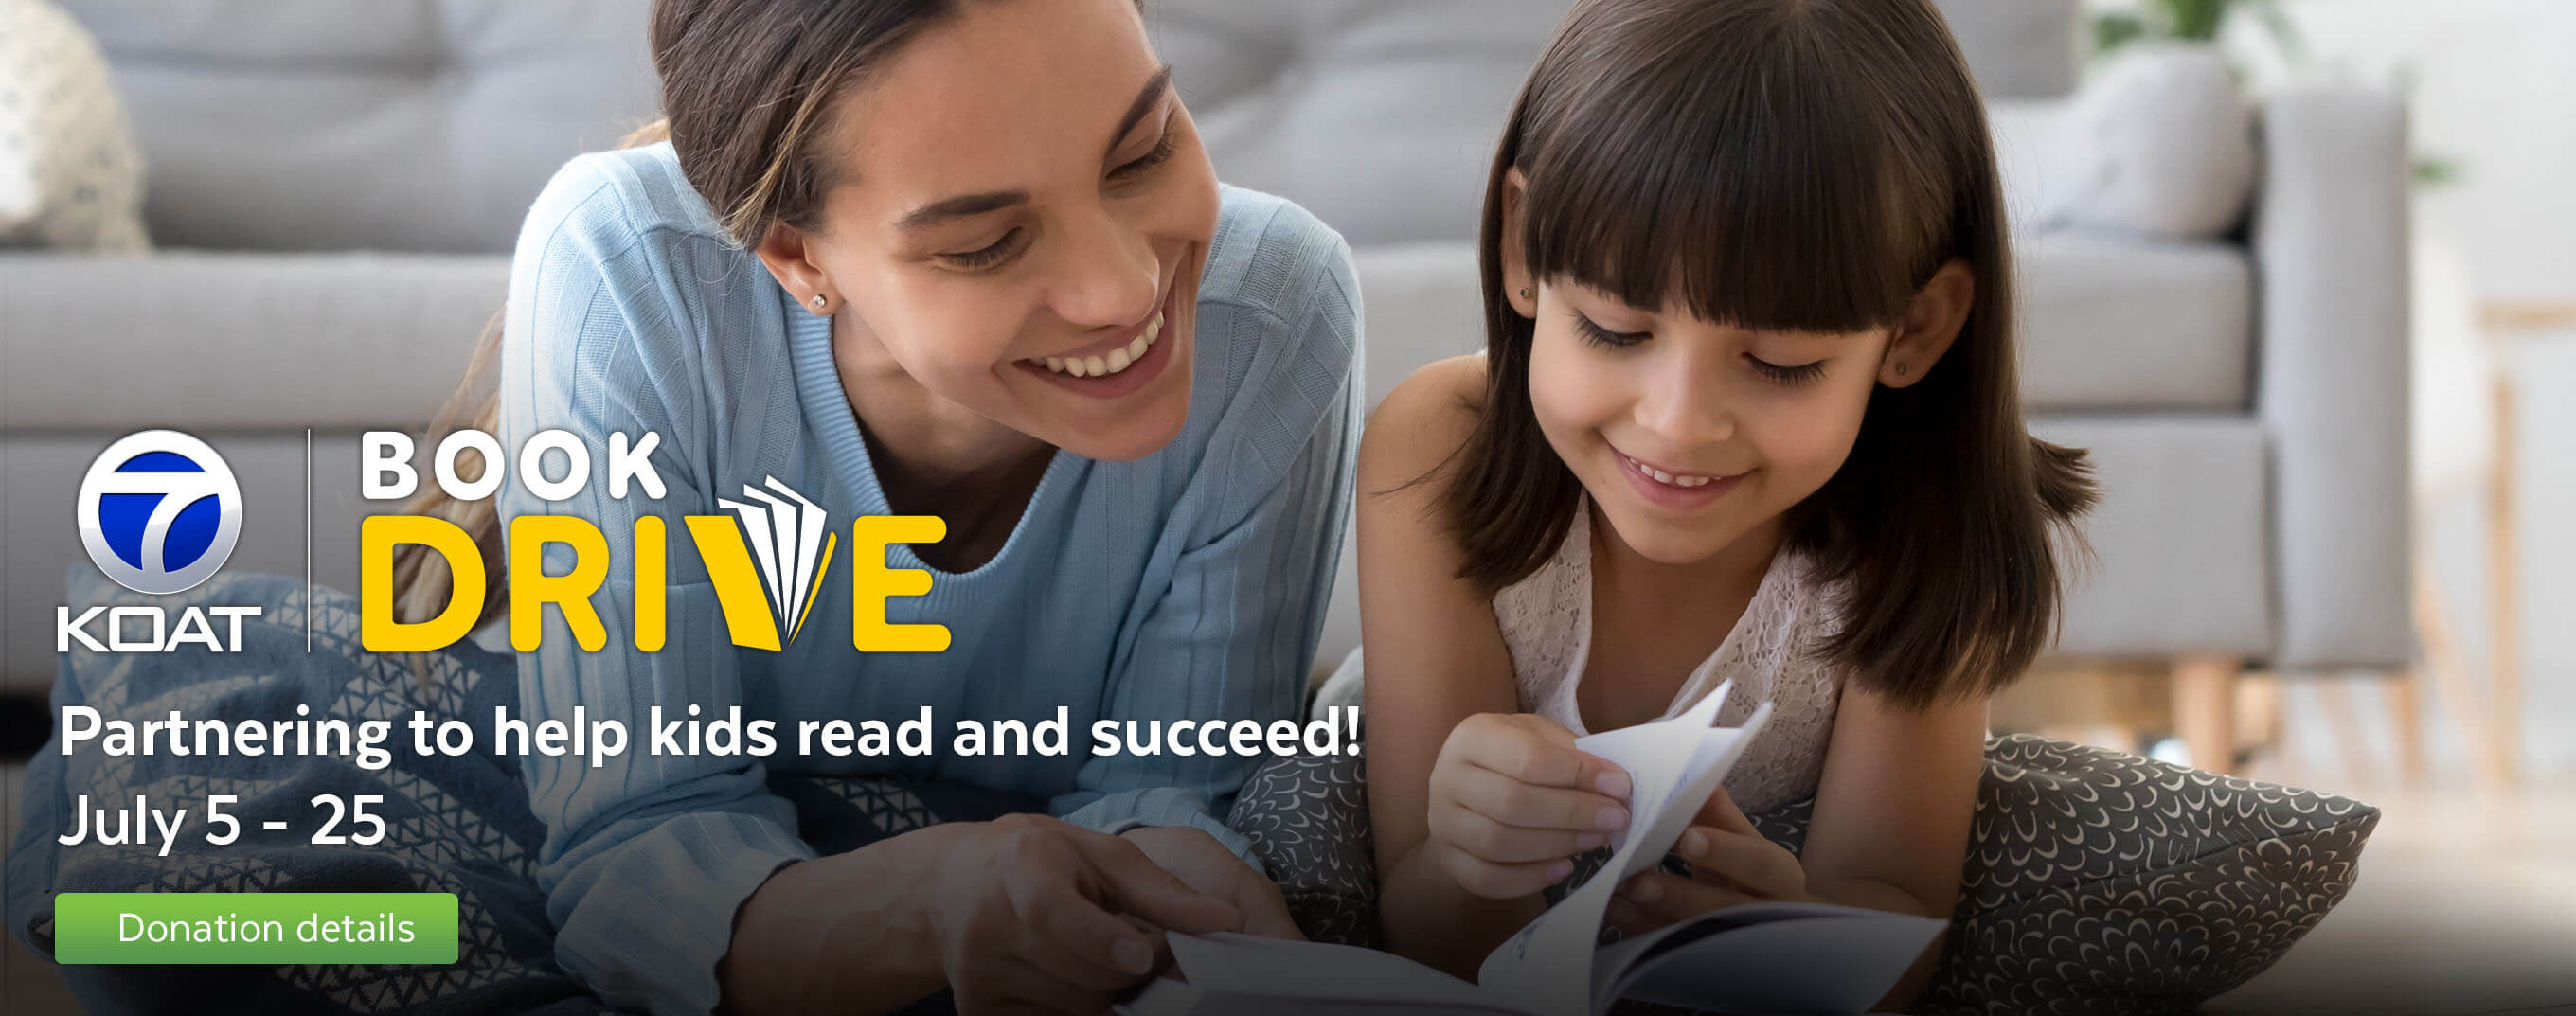 Donate to KOAT's book drive to help kids read and succeed.